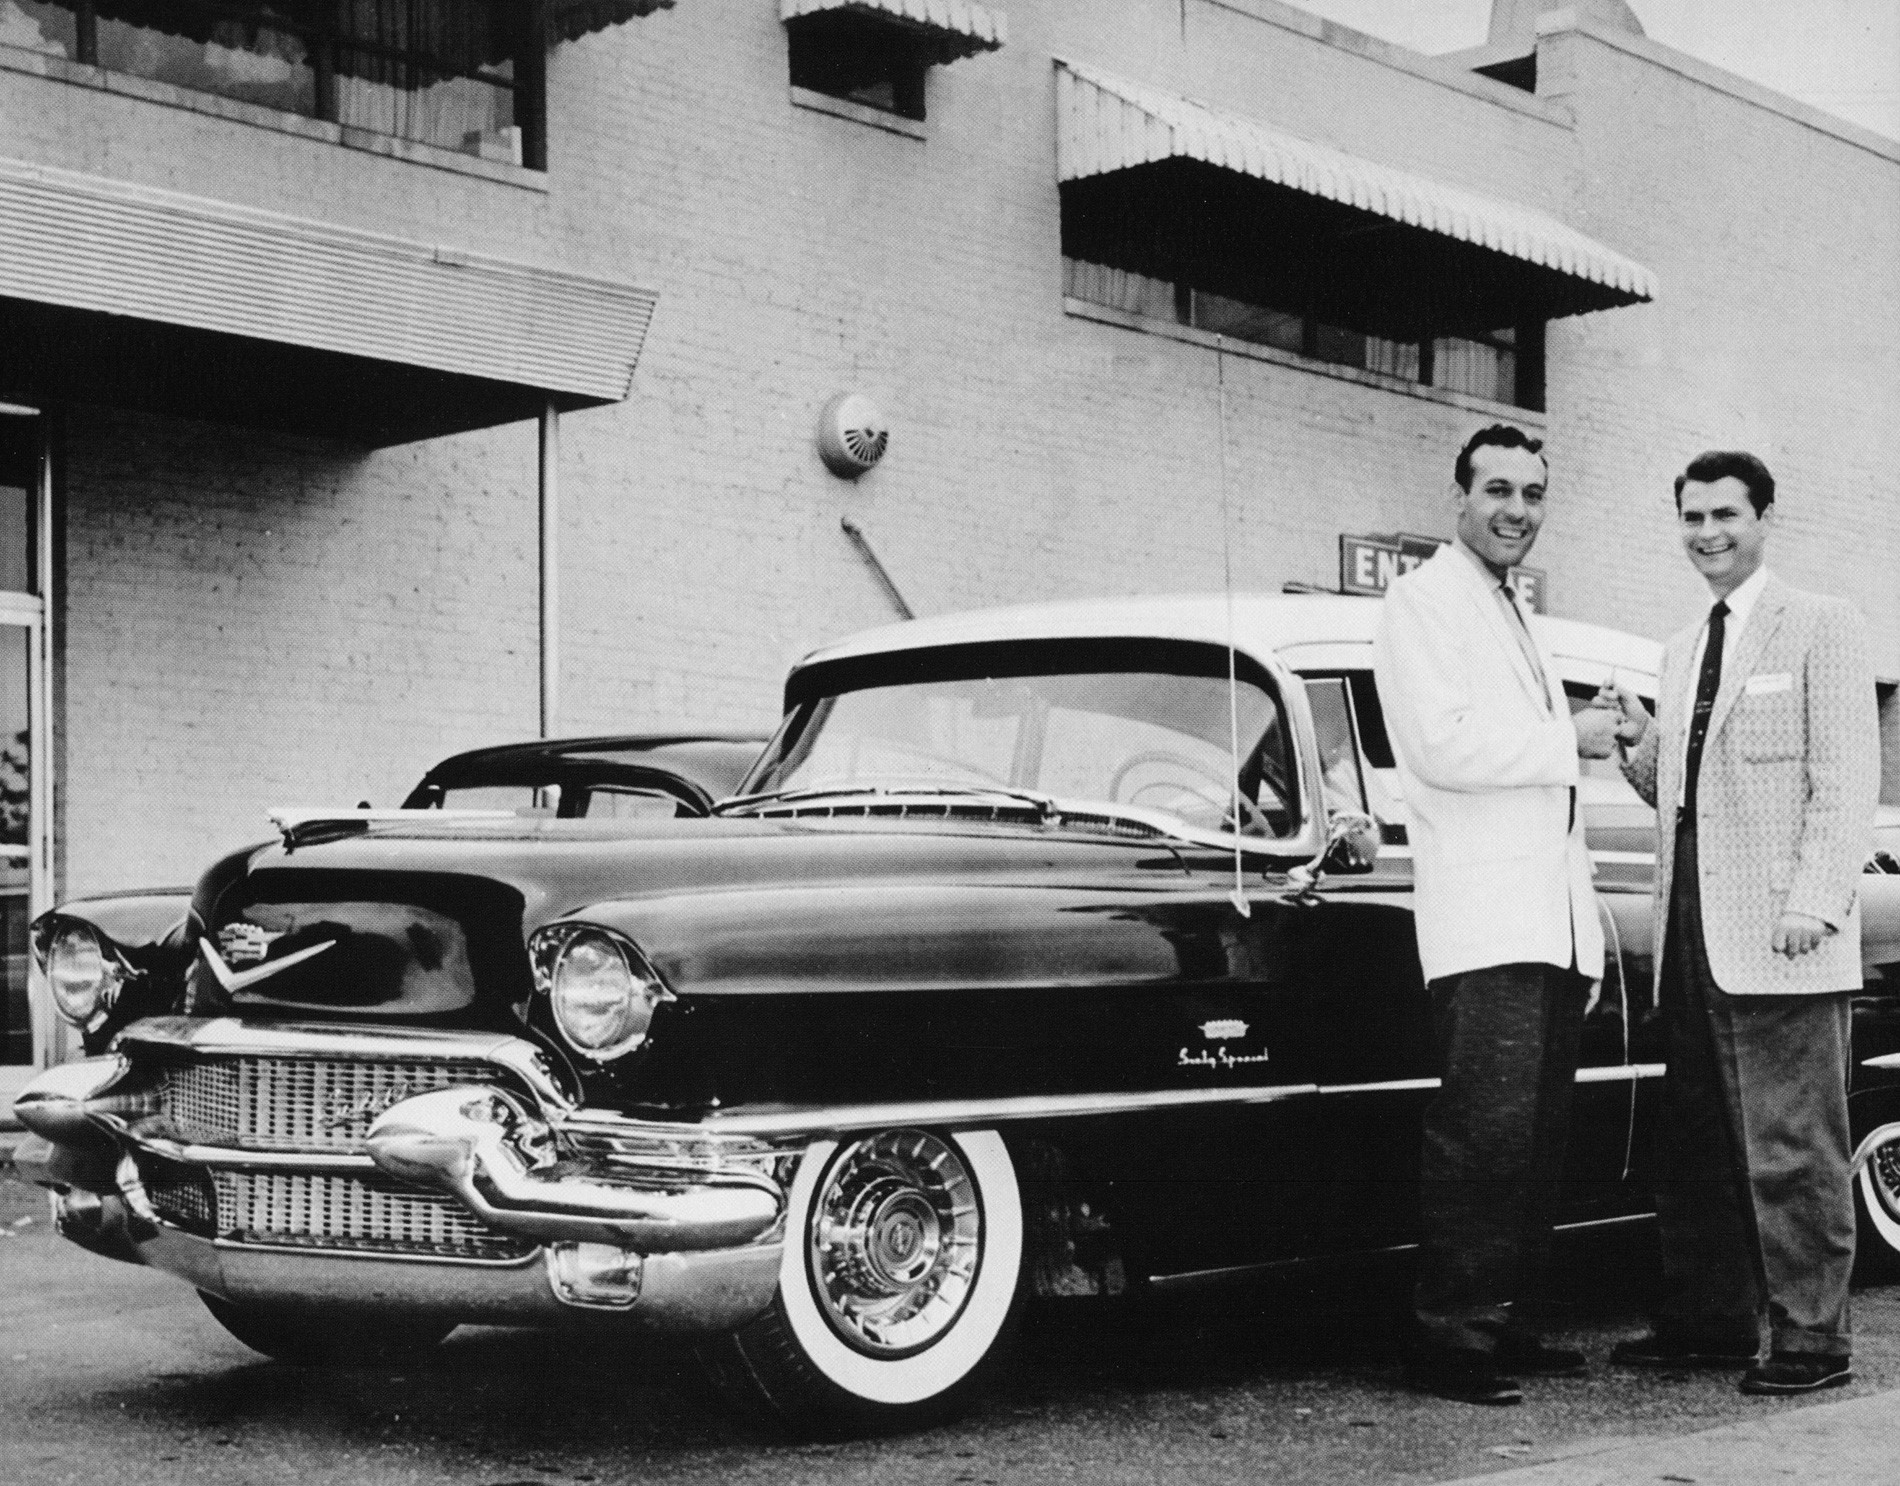 Carl Perkins and Sam Phillips